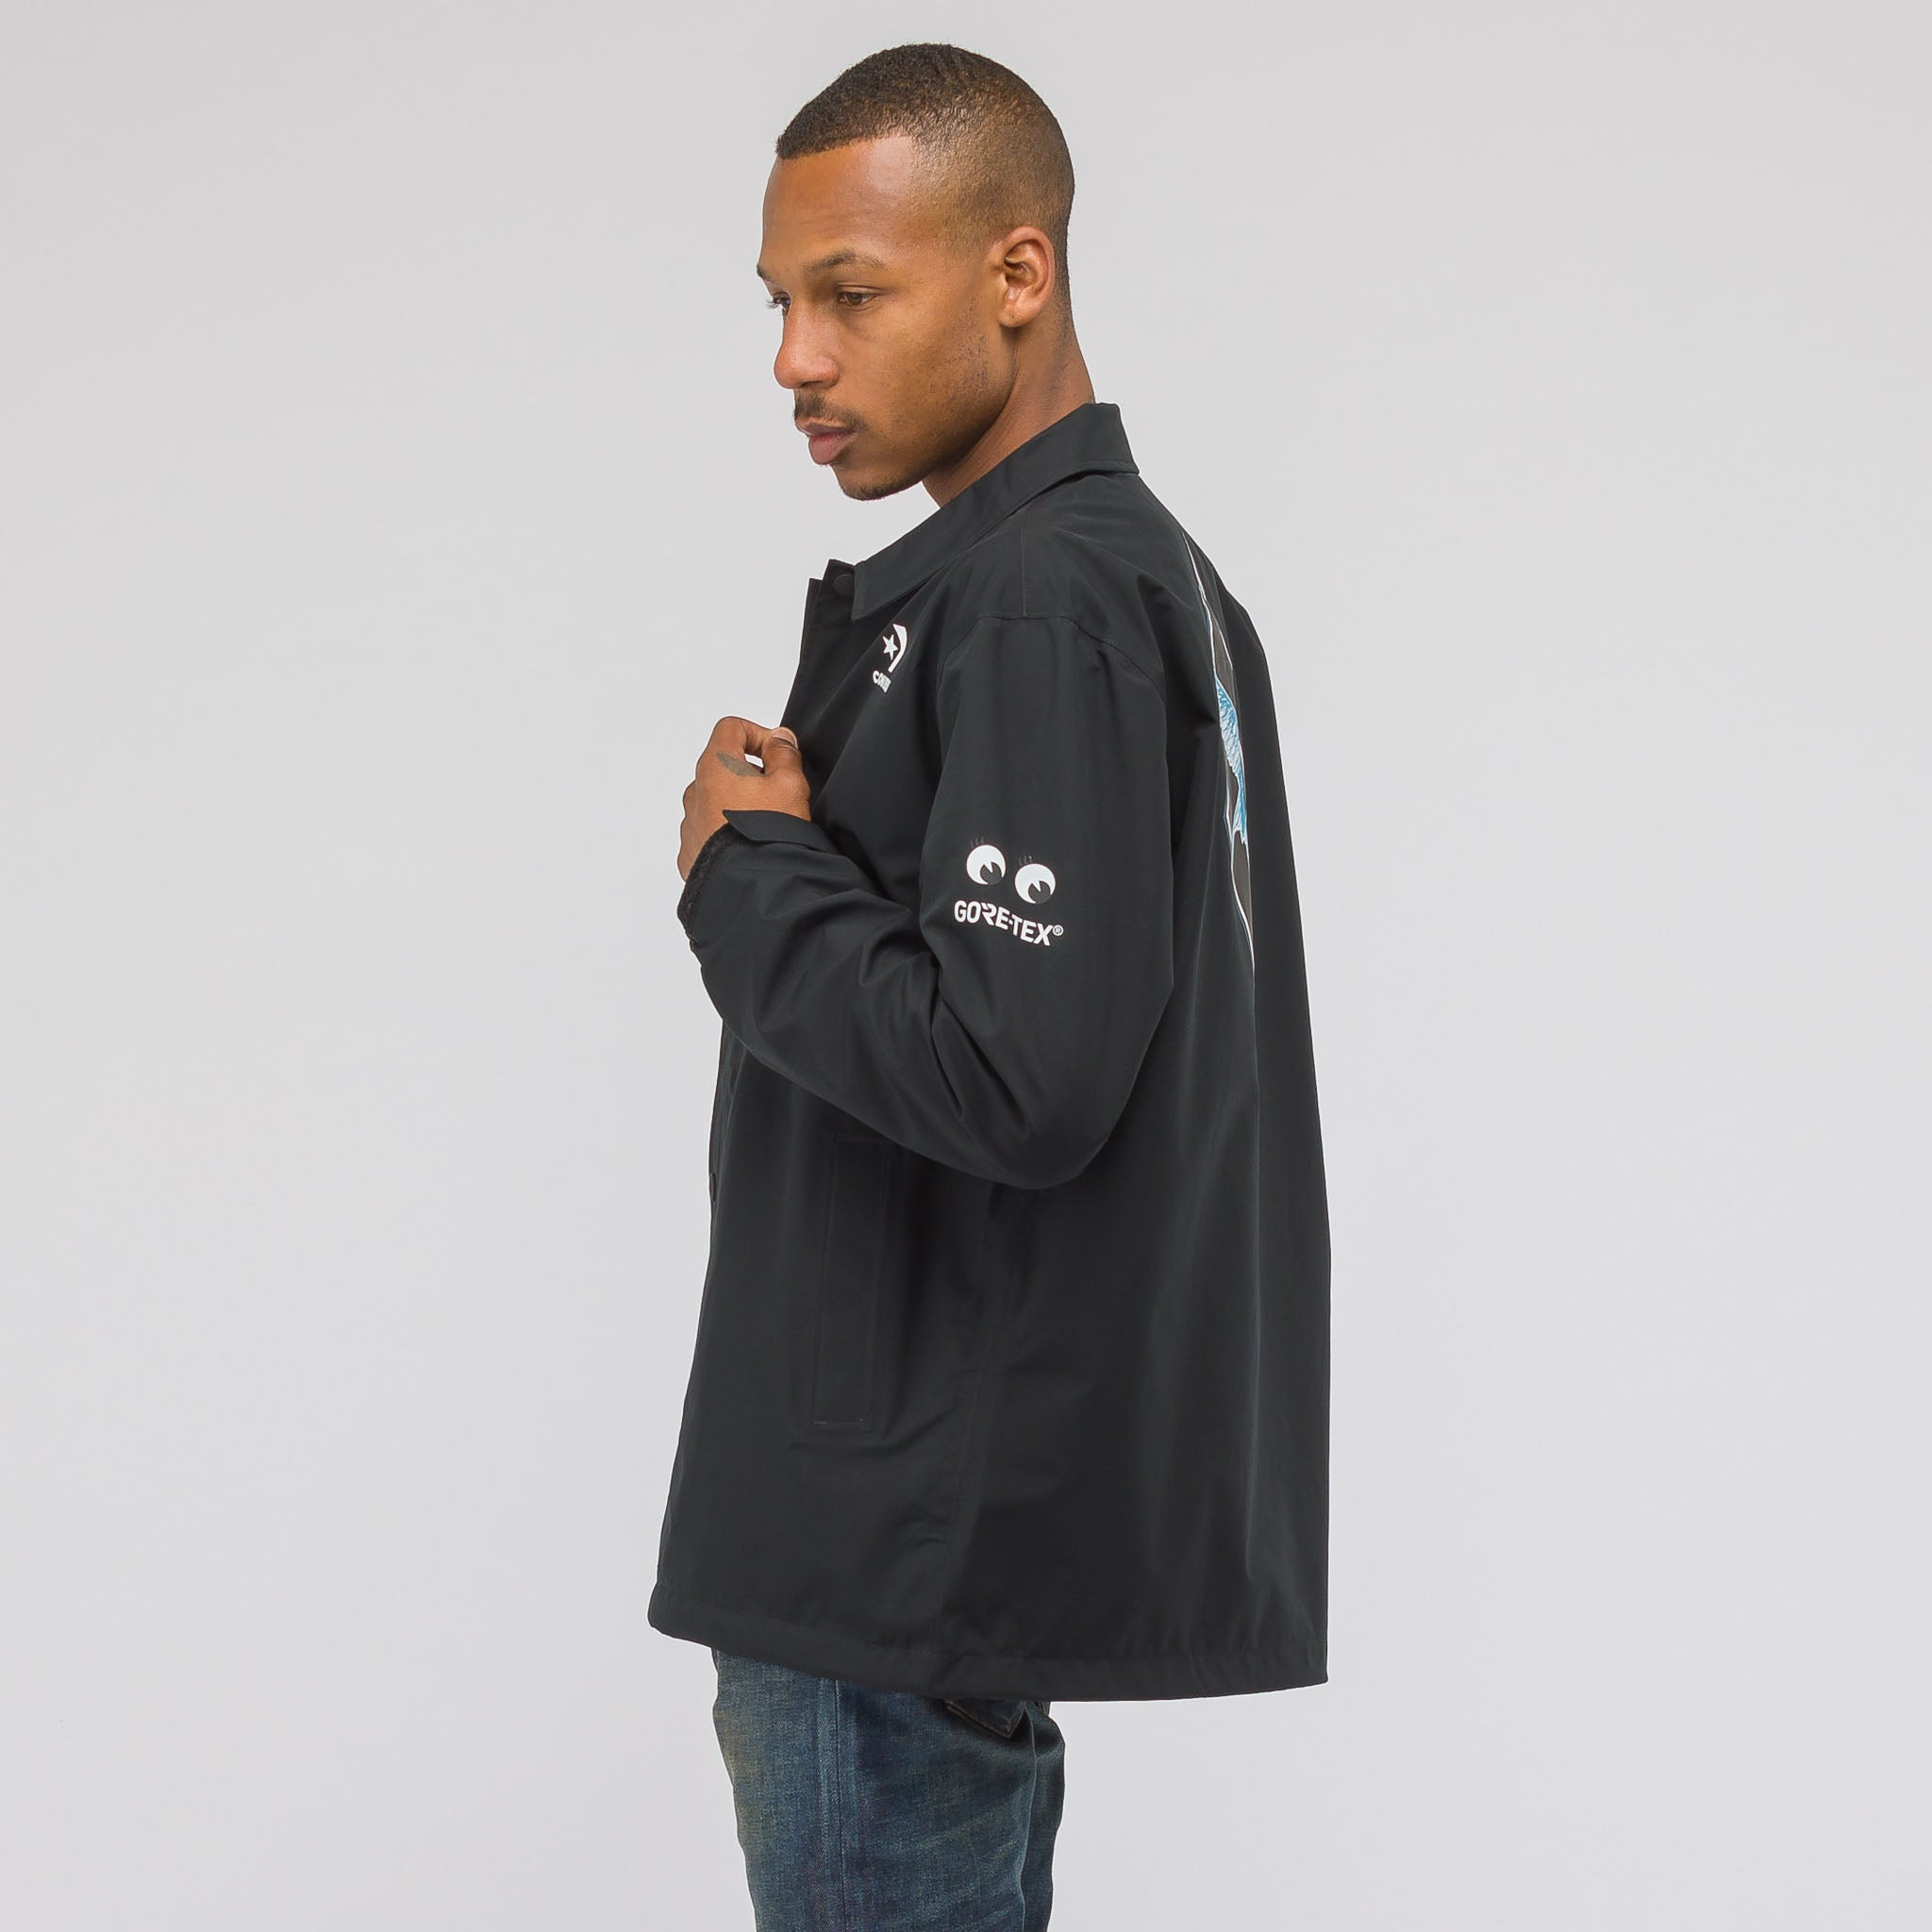 x Dr Woo Goretex Coaches Jacket in Black